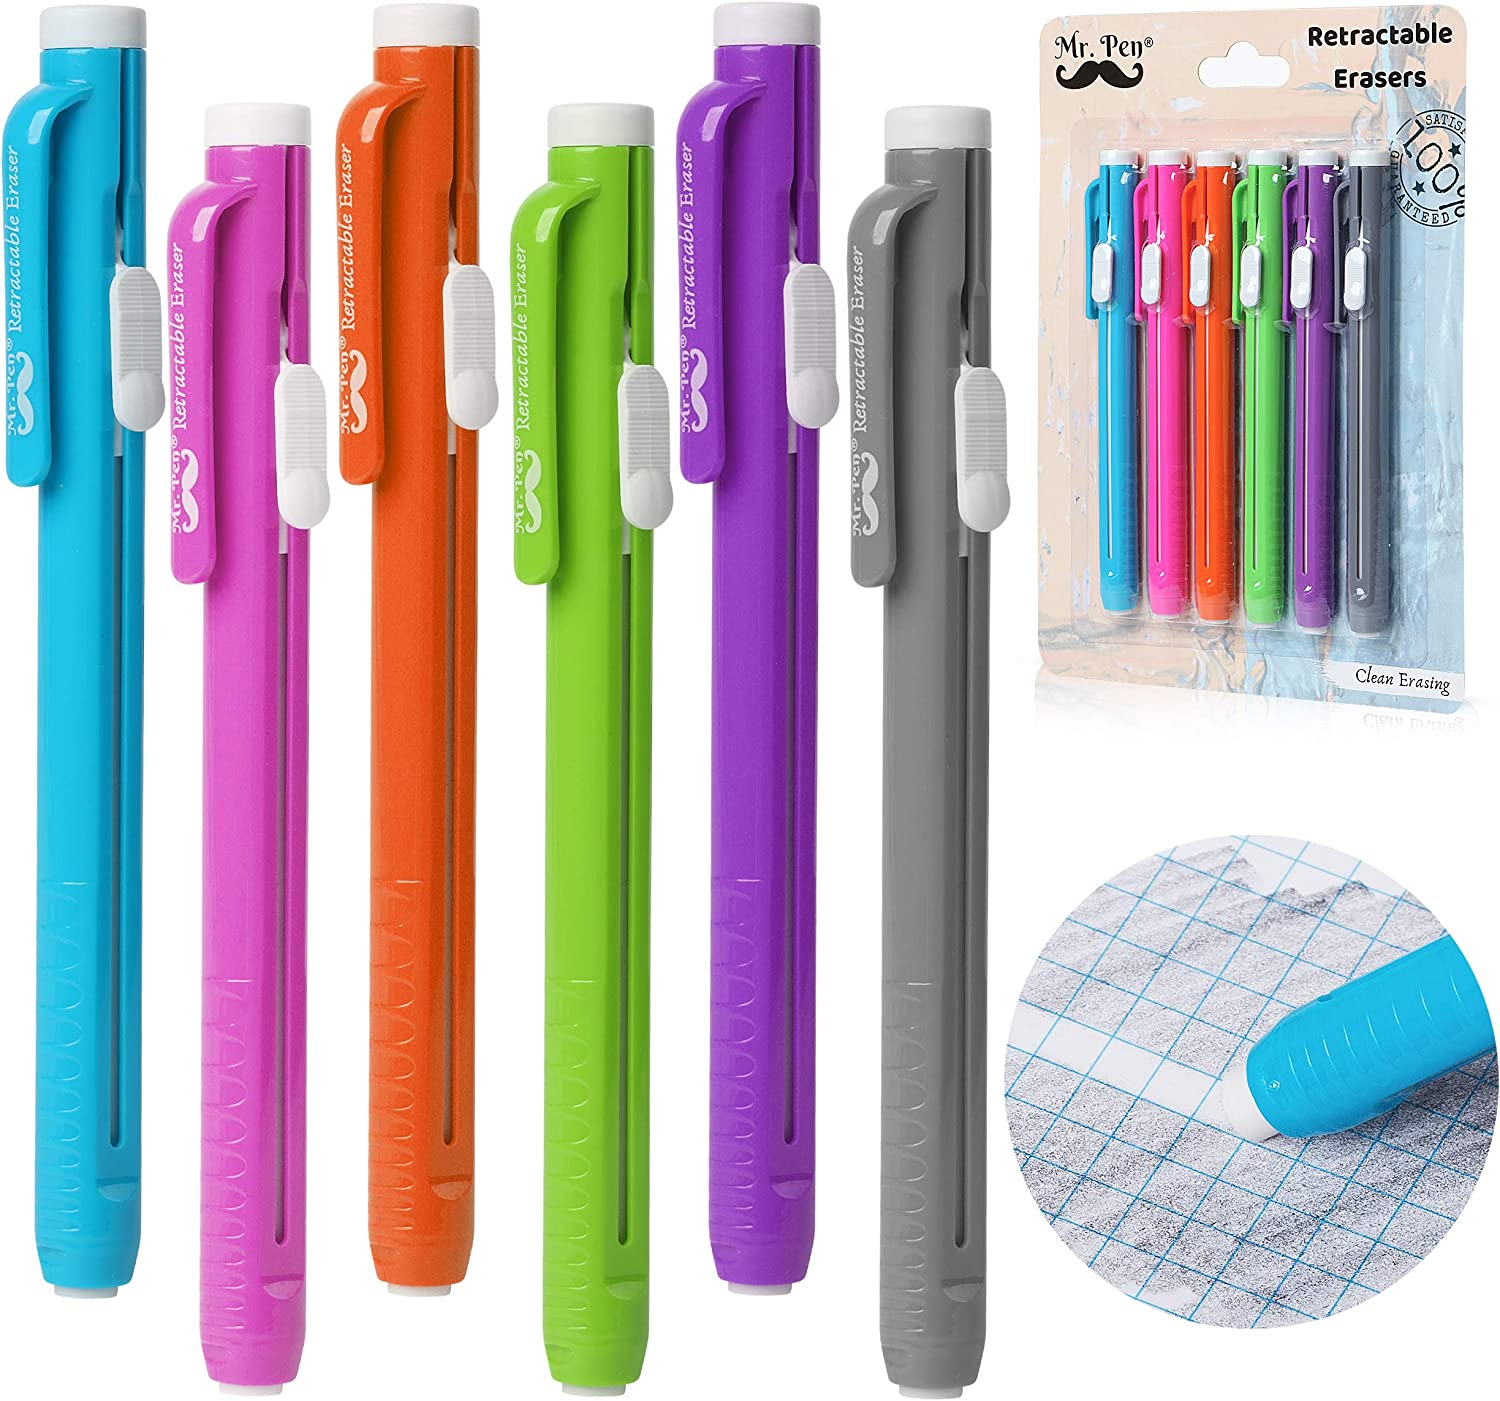 pencil writing corrections for students and artists Retractable eraser pen